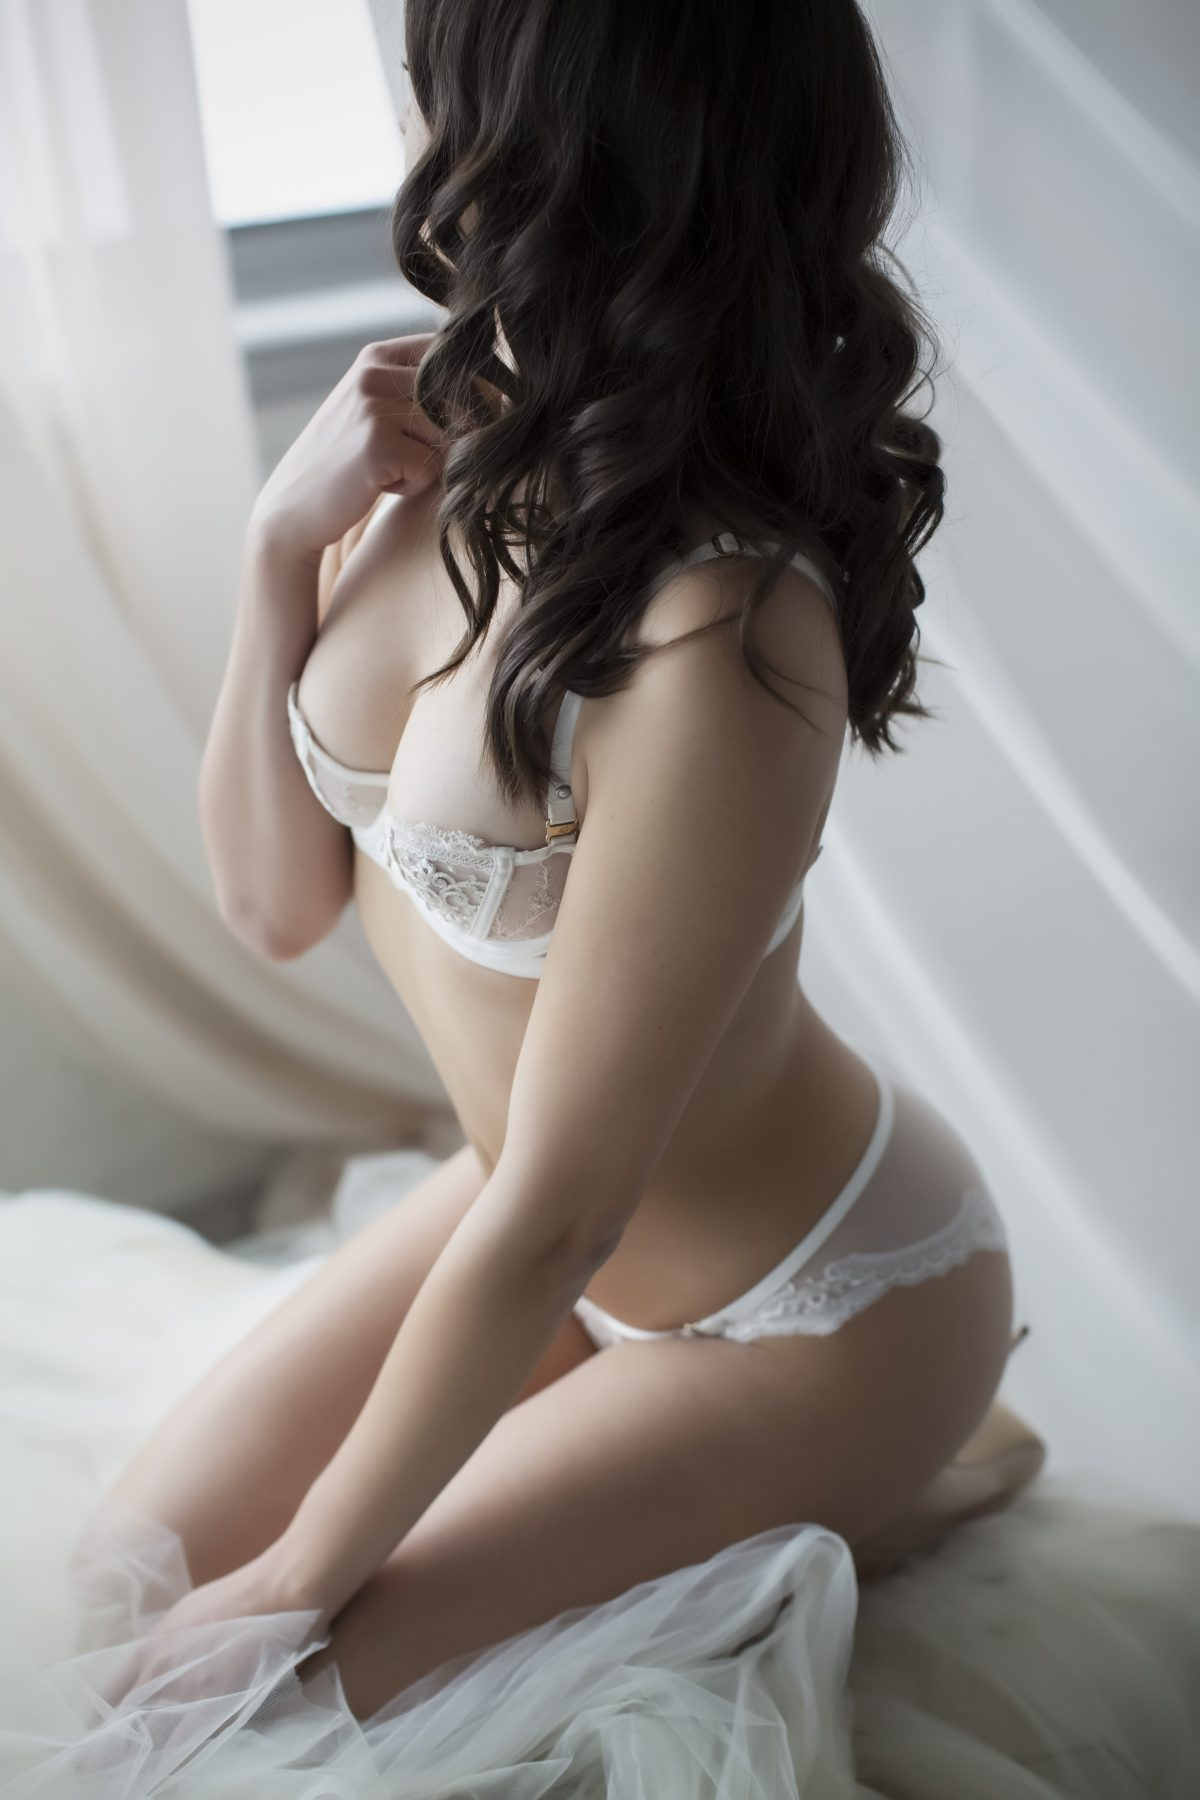 Toronto escorts companion upscale Hannah Interests Duo Disability-friendly Non-smoking Age Young Figure Slender Petite Breasts Natural Hair Brunette Ethnicity European Tattoos Small